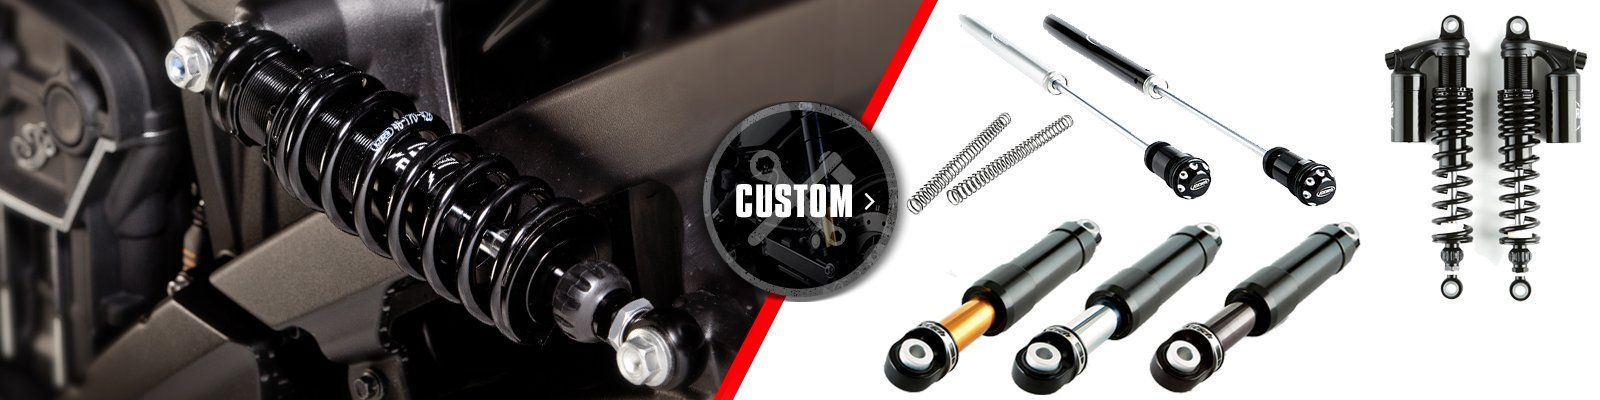 K-Tech Motorcycle Suspension Parts